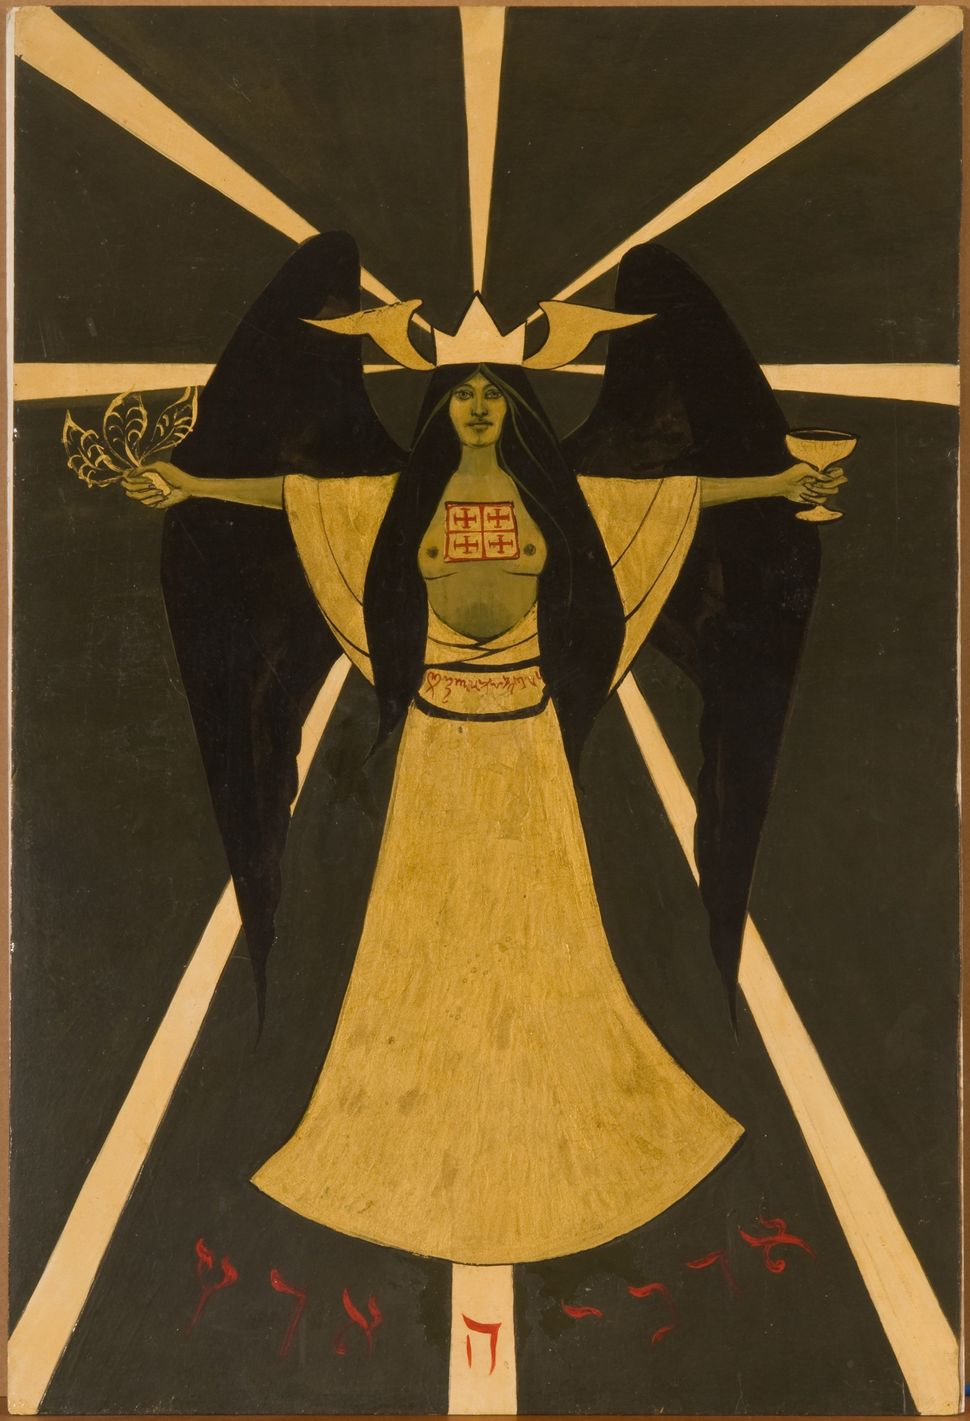 Holy Guardian Angel according to Aleister Crowley 1966 casein and gold lacquer on board 29.5 x 19.25 inches